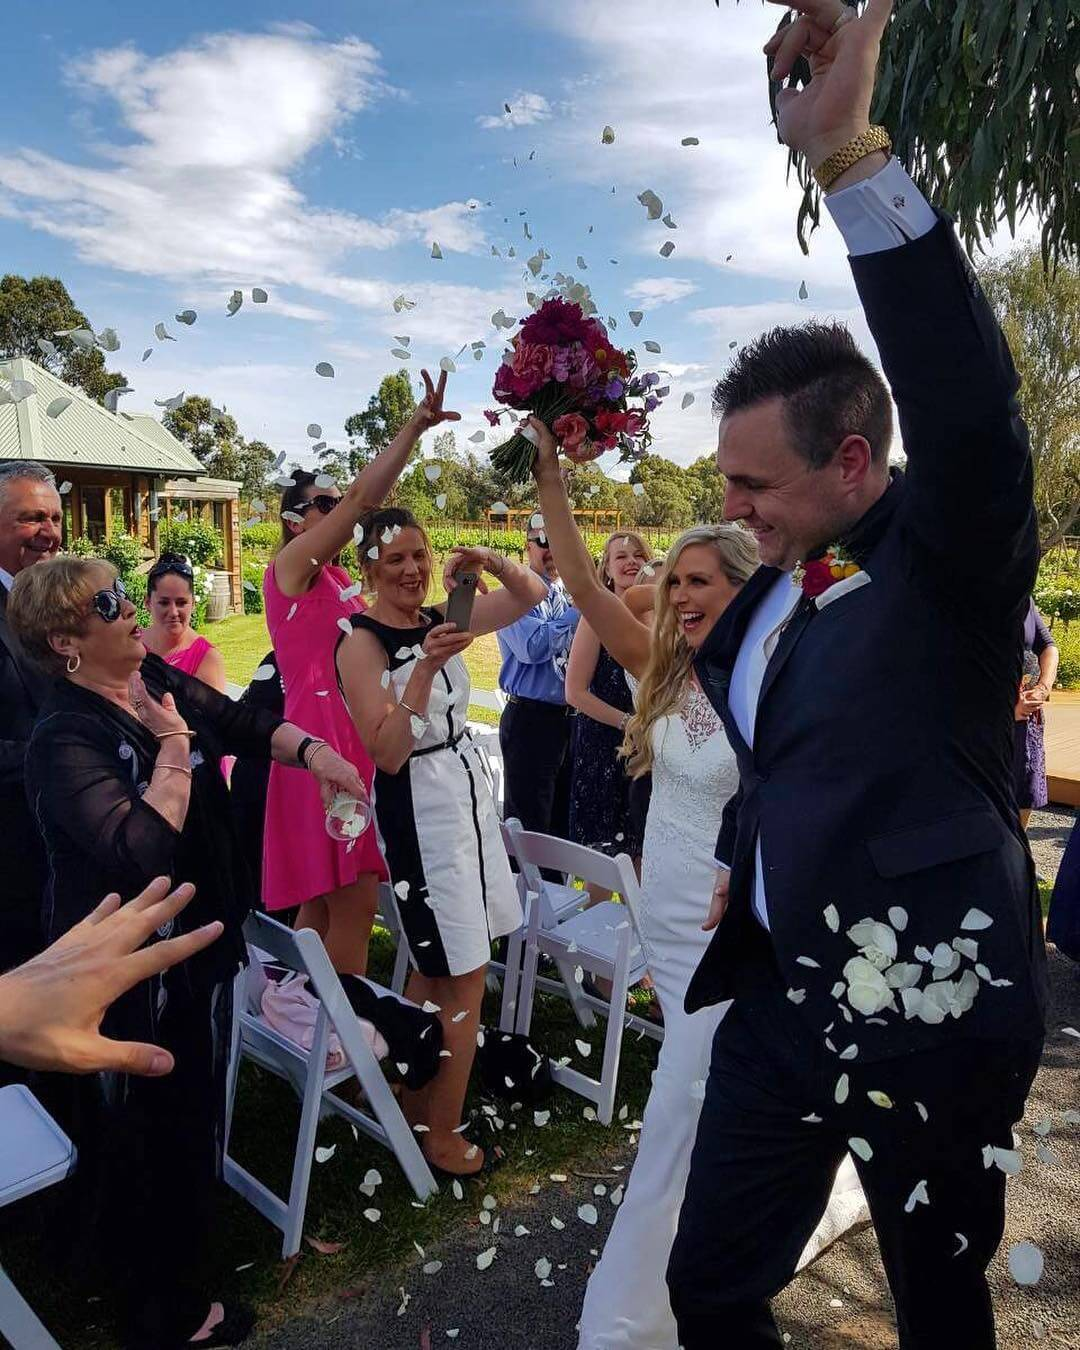 Weddings - Leeanne Q Civil Celebrant, Croydon, Melbourne